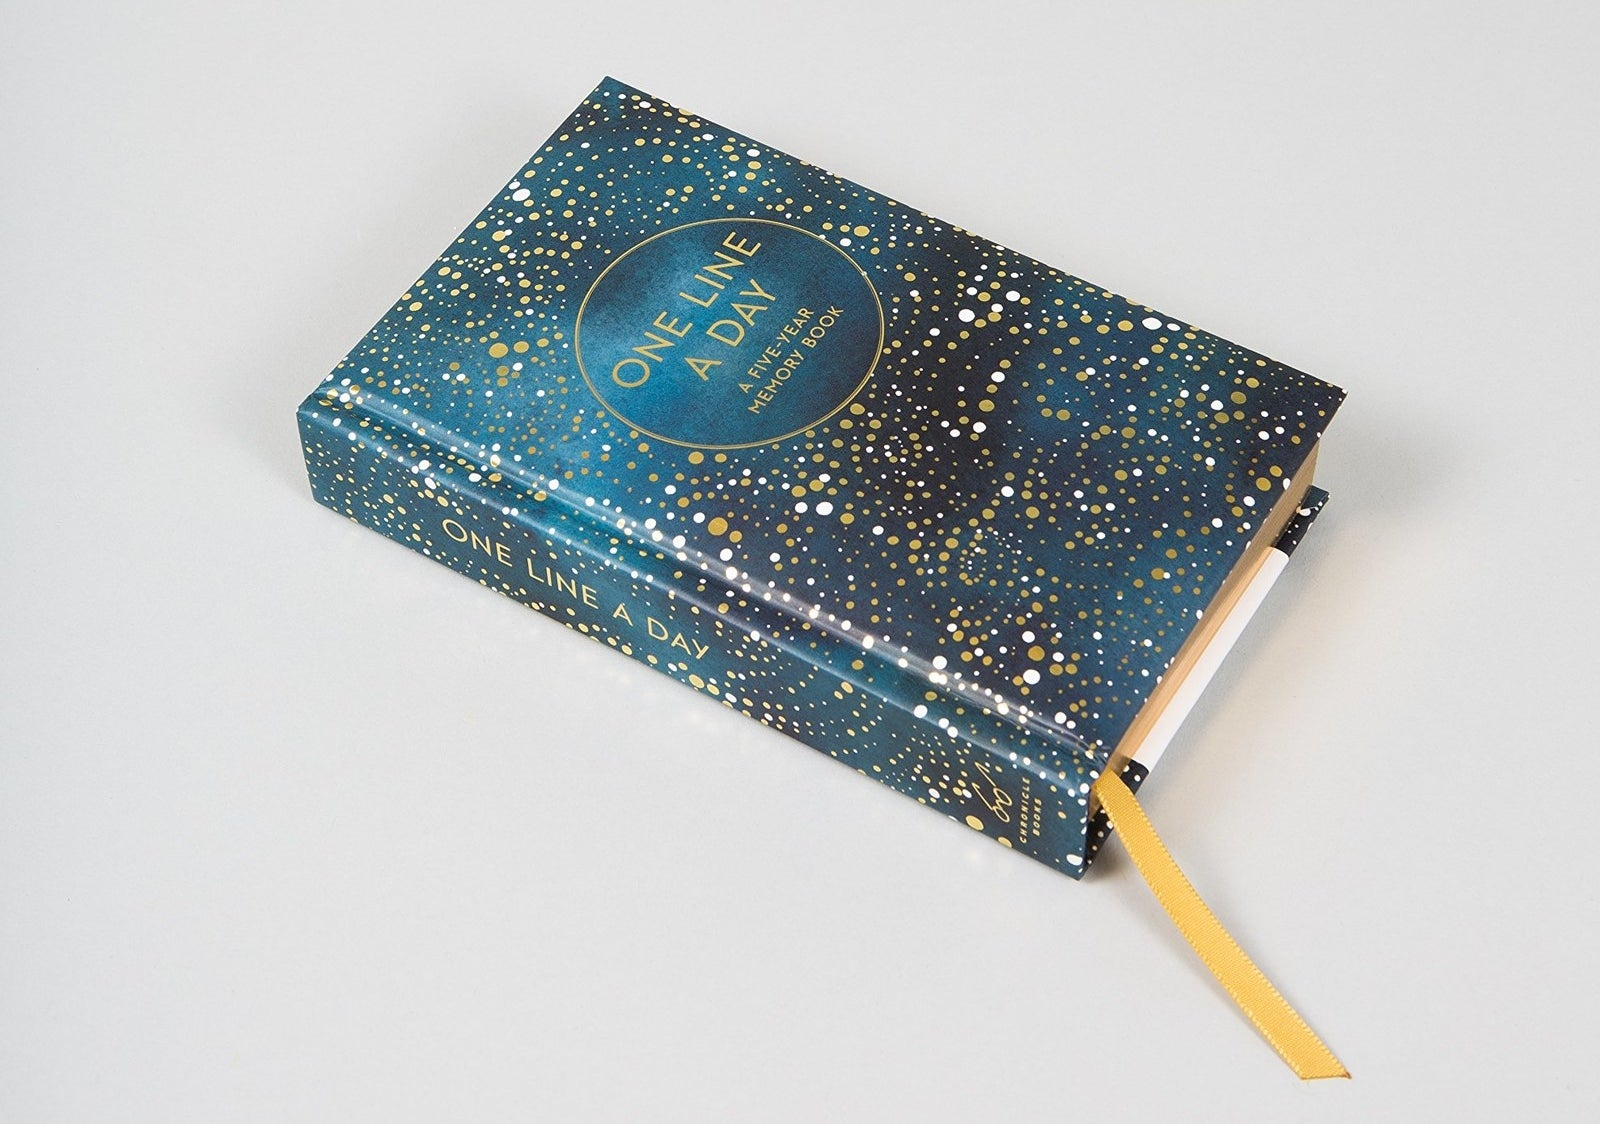 It's gorgeous AND durable, so they'll actually want to use it for the full five years. The pages also also gilded. FANCY!Get it from Amazon for $13.77 or Barnes and Noble for $16.95.